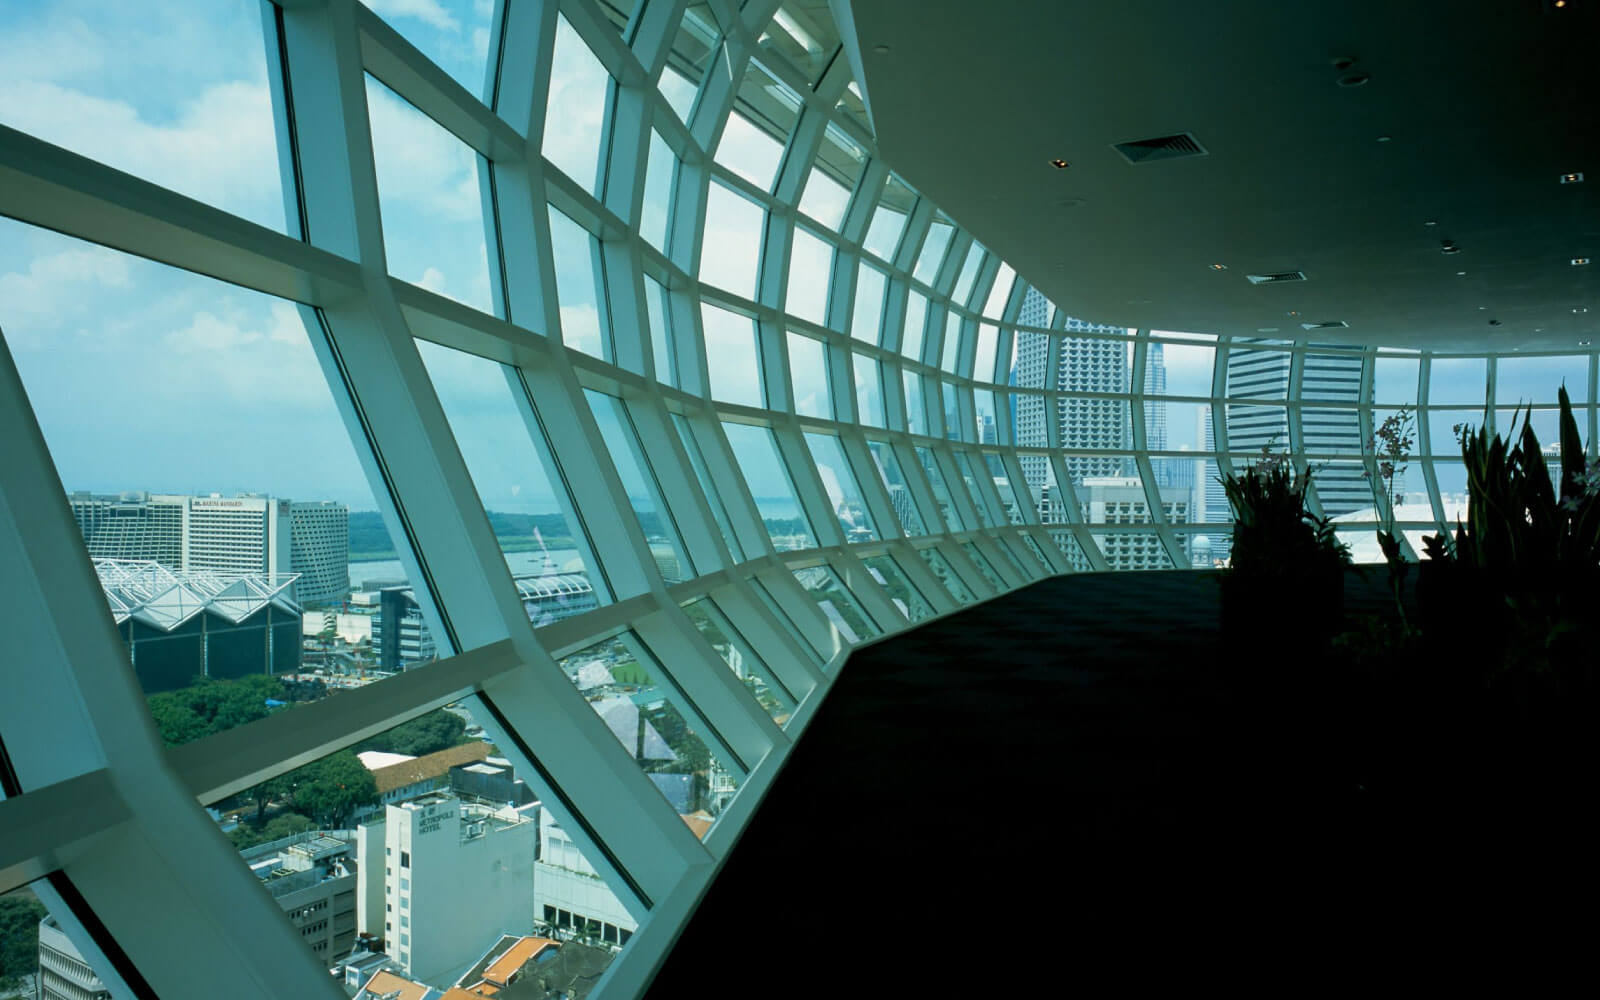 ecological architect features light sensors for National Library Singapore